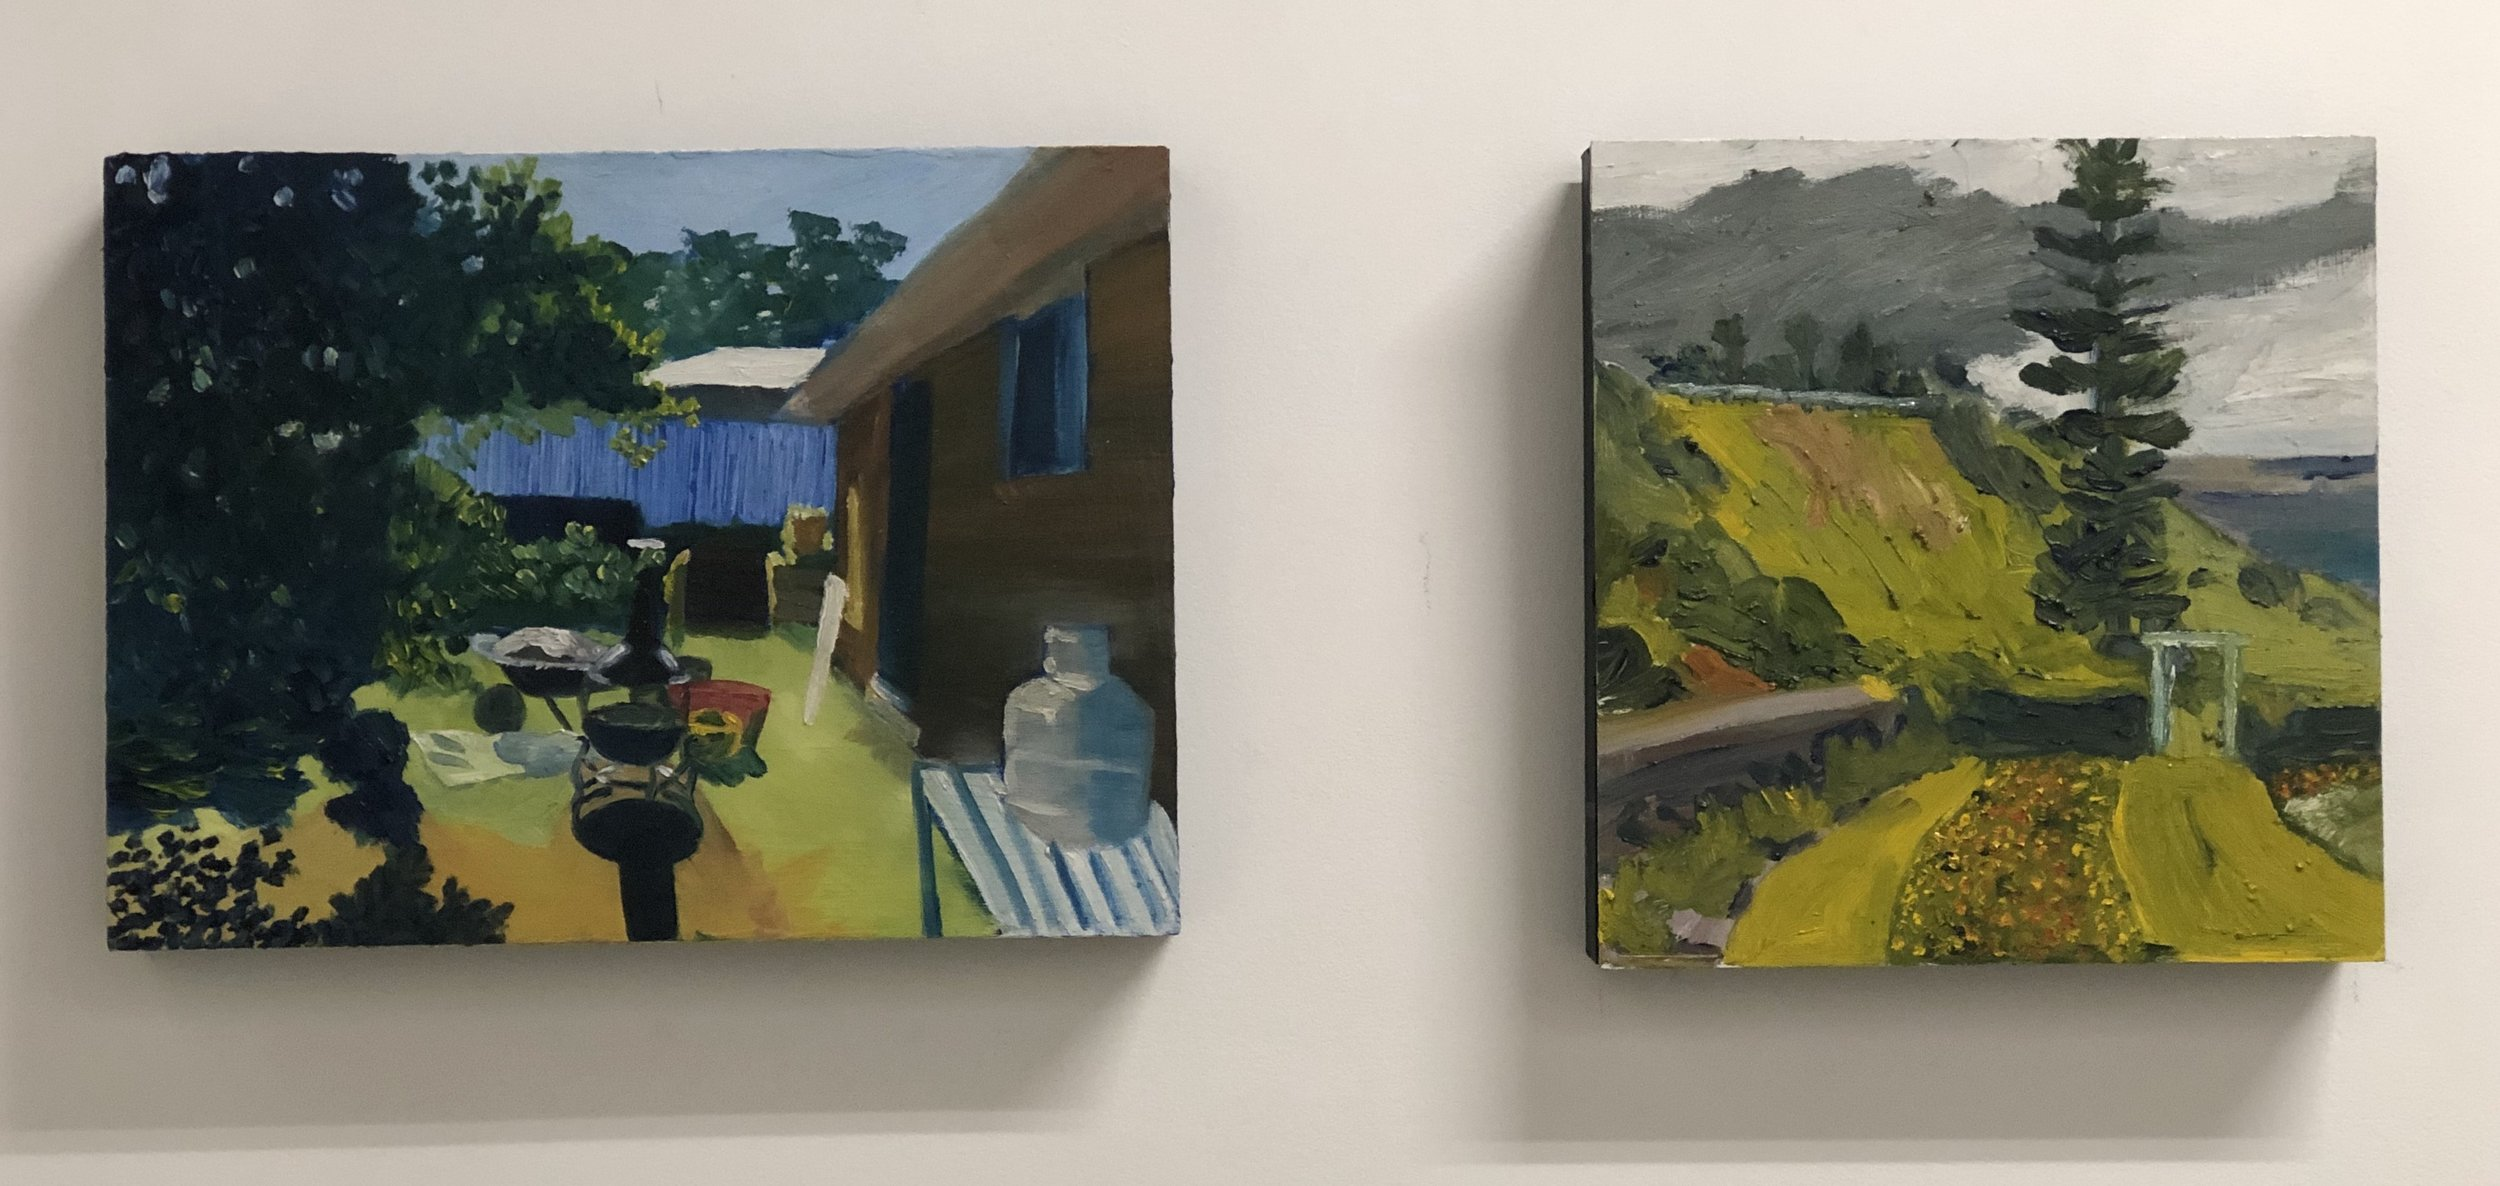 26.  Patrick Mavety Home is where the heart is 2019 oil on board 30 x 40cm $390.00  27.  Patrick Mavety Windy Eddie 2019 oil on board 30 x 40cm $370.00